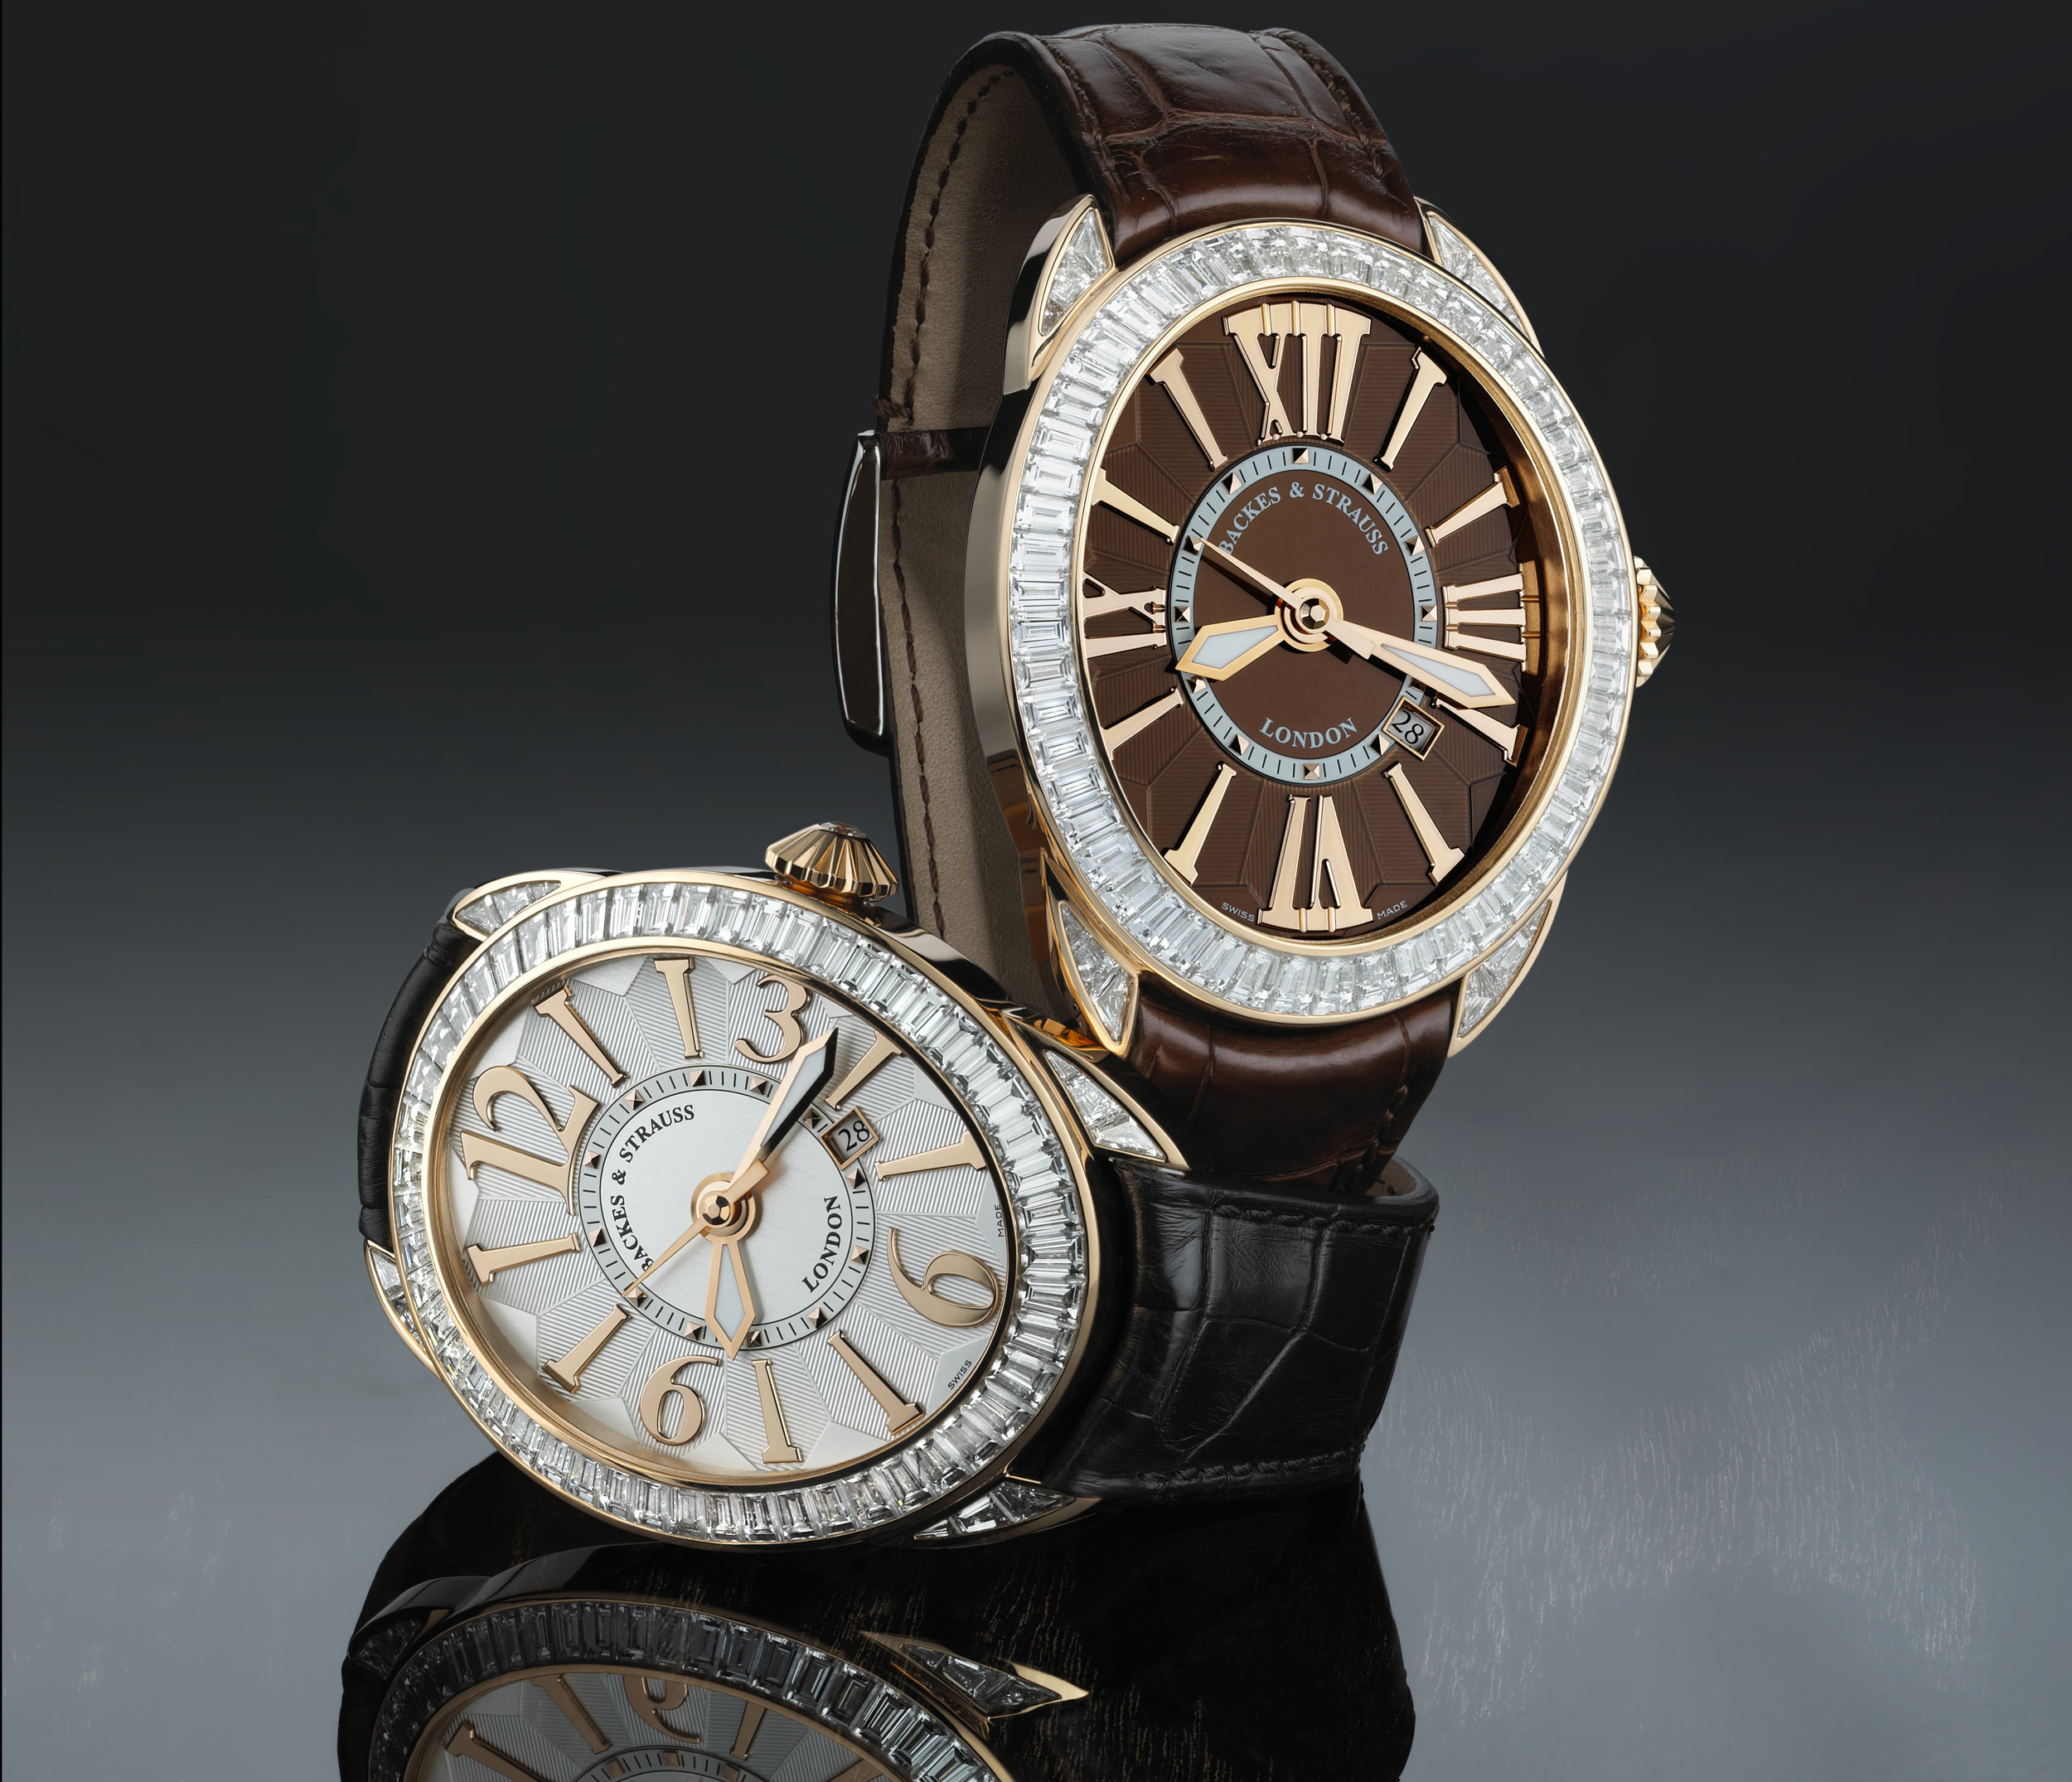 Regent Baguette 4452 diamond watch for him and her